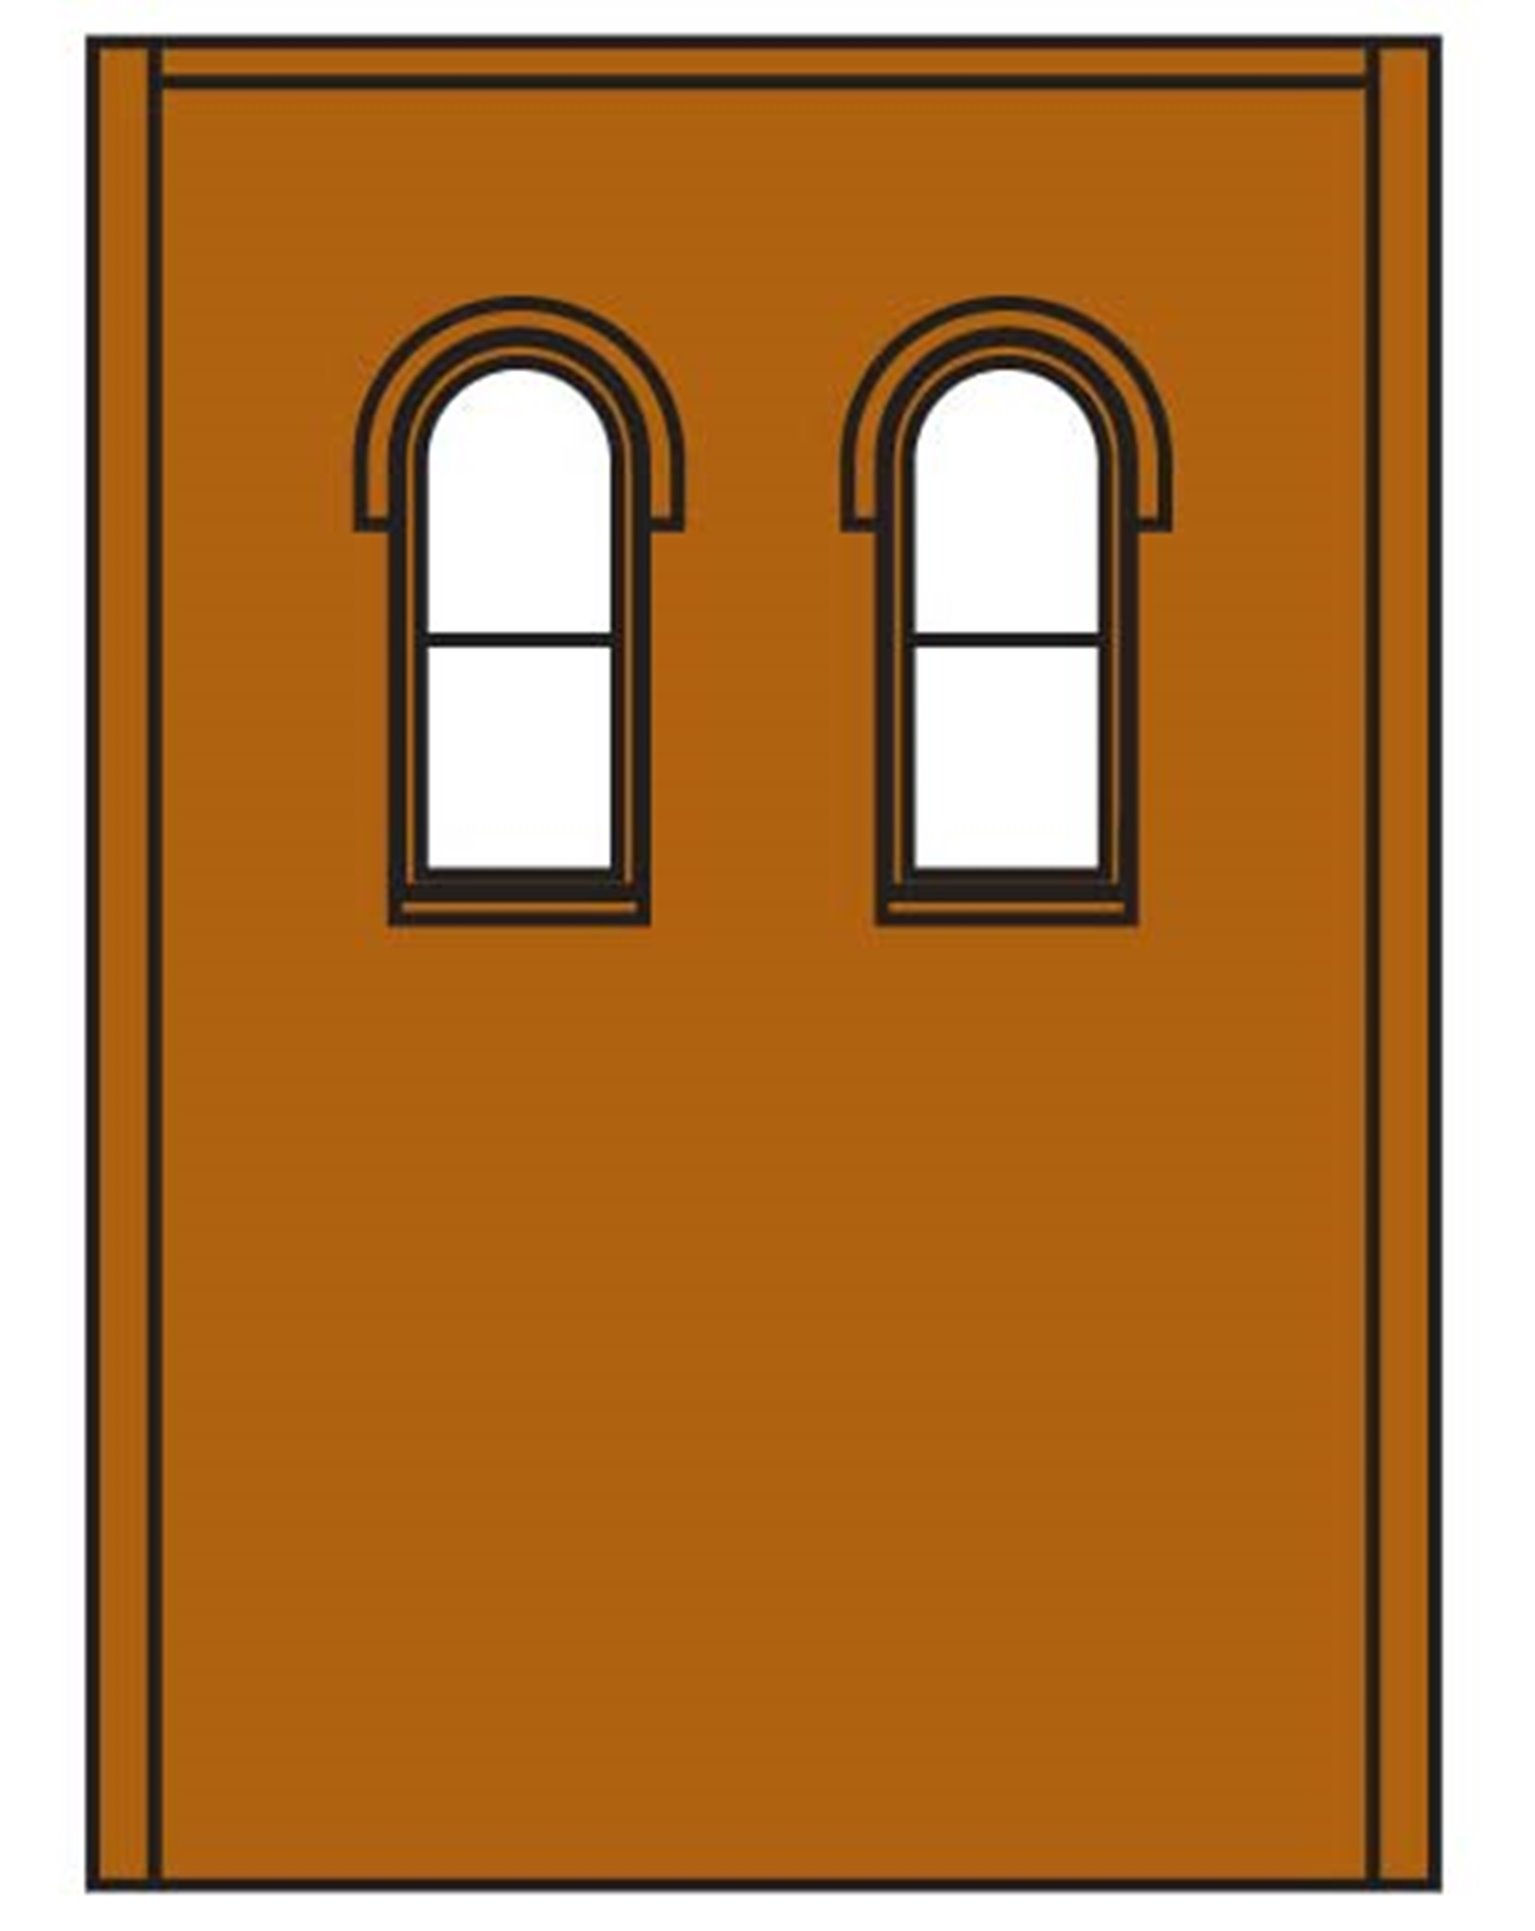 Two Storey Upper Arched 2 Windows